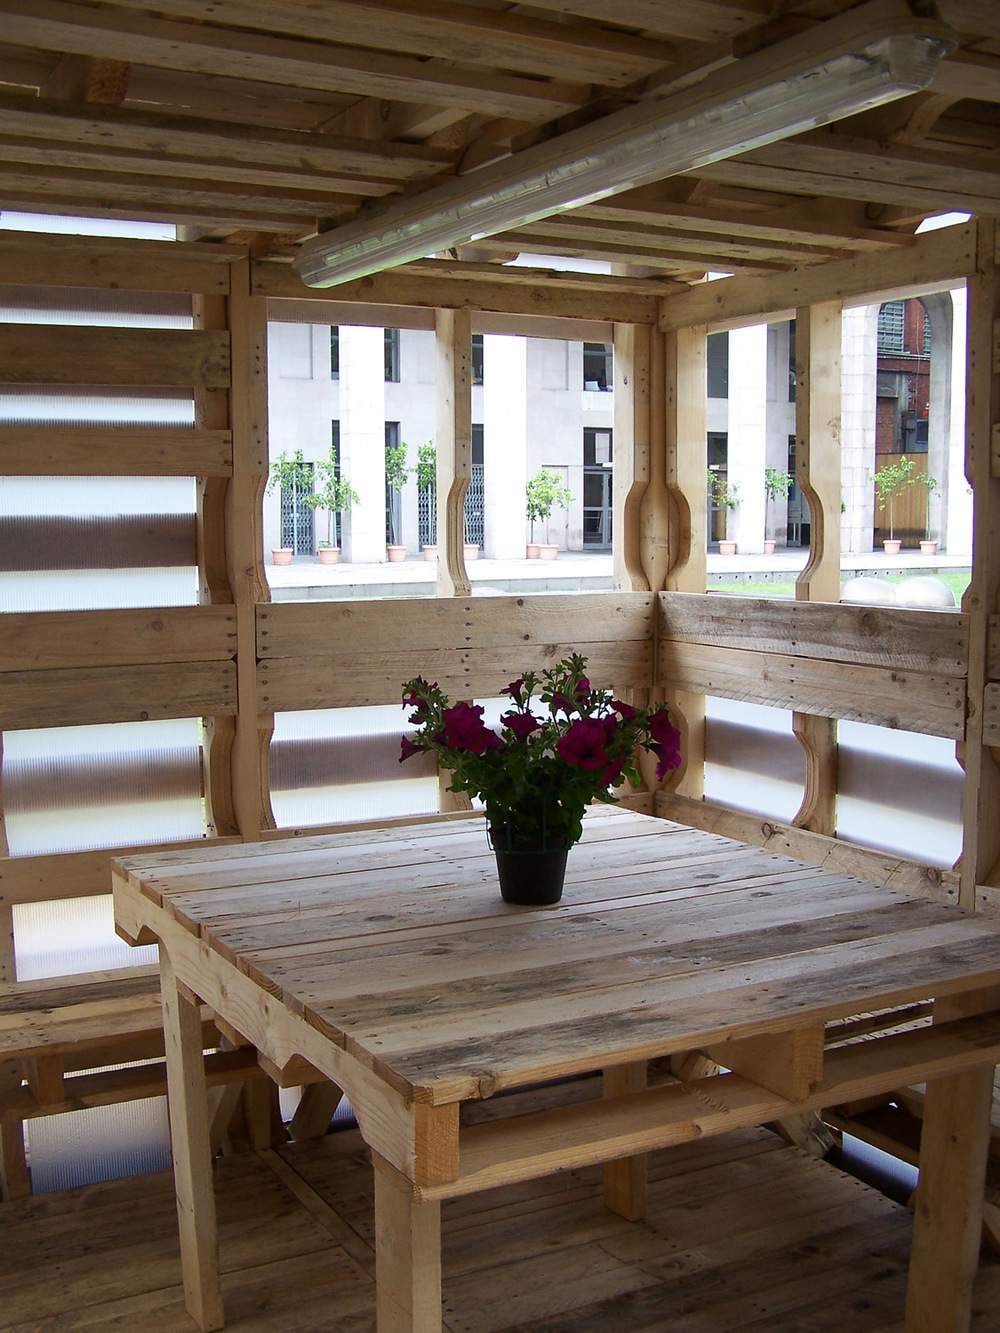 Pallet House from inside _ Milan photo by Suzan Wines,Dining room.jpg